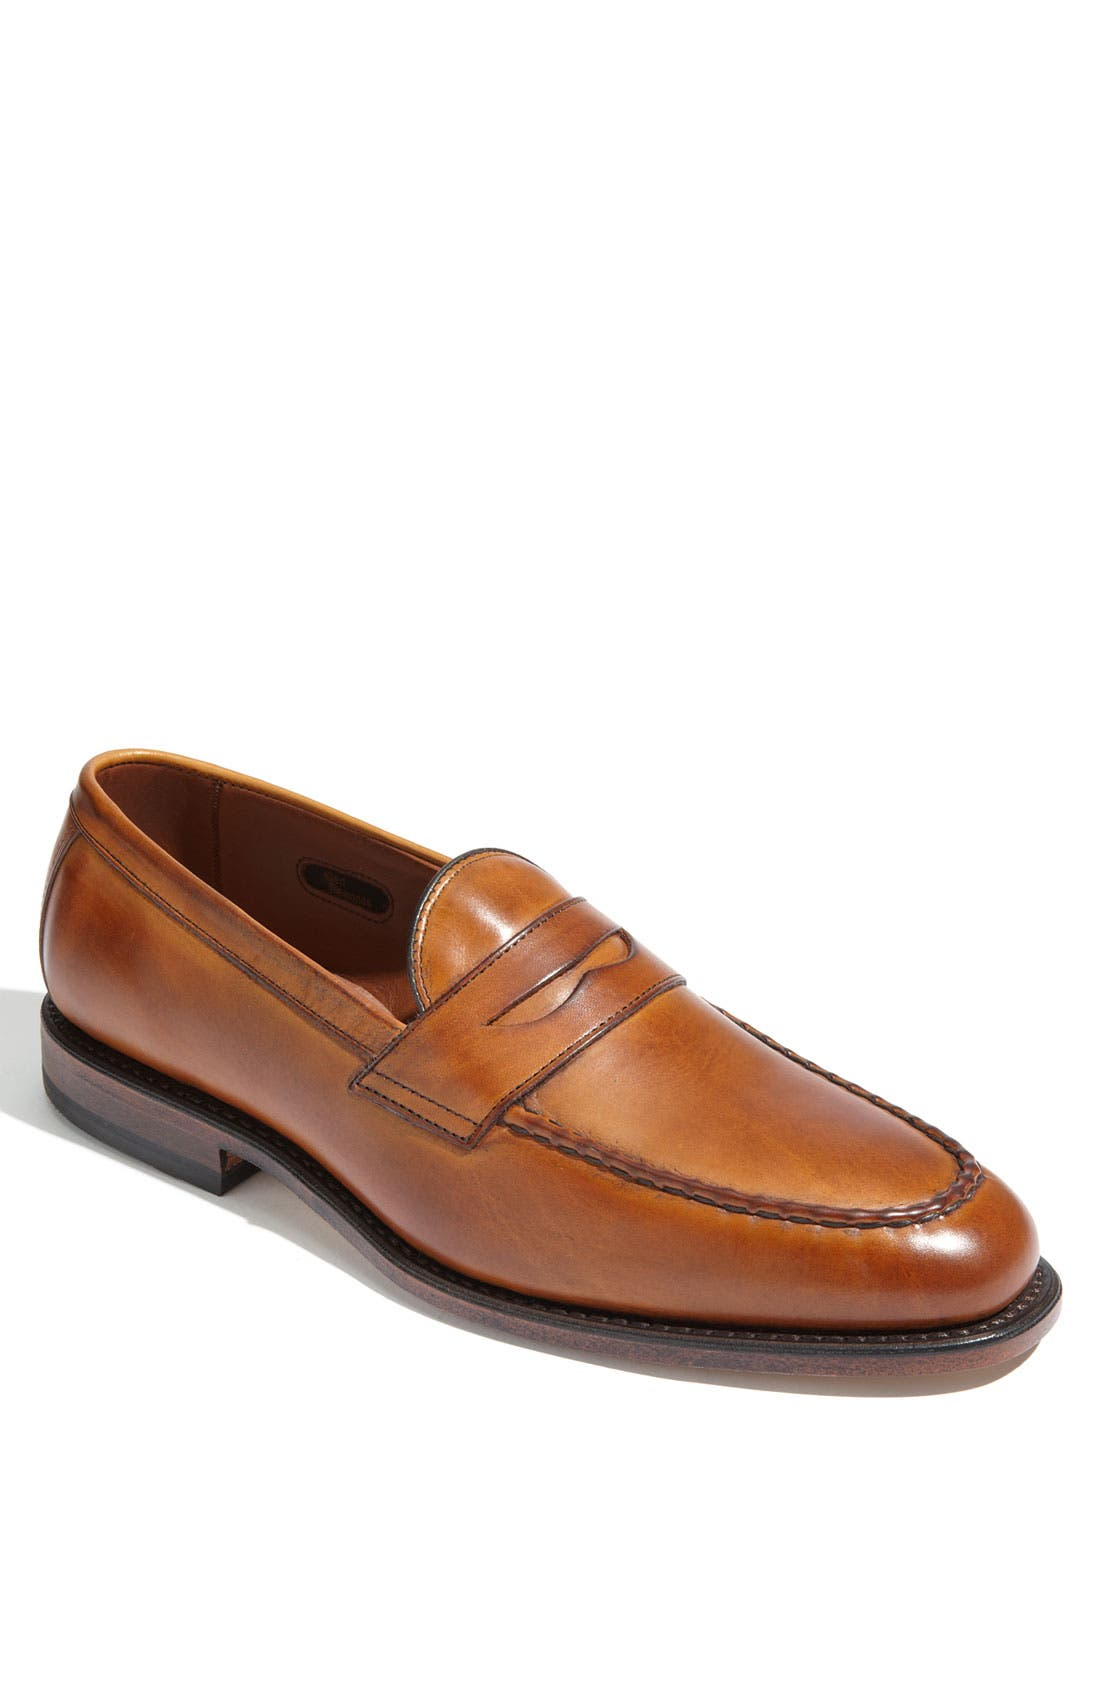 Main Image - Allen Edmonds 'McGraw' Penny Loafer (Online Only)